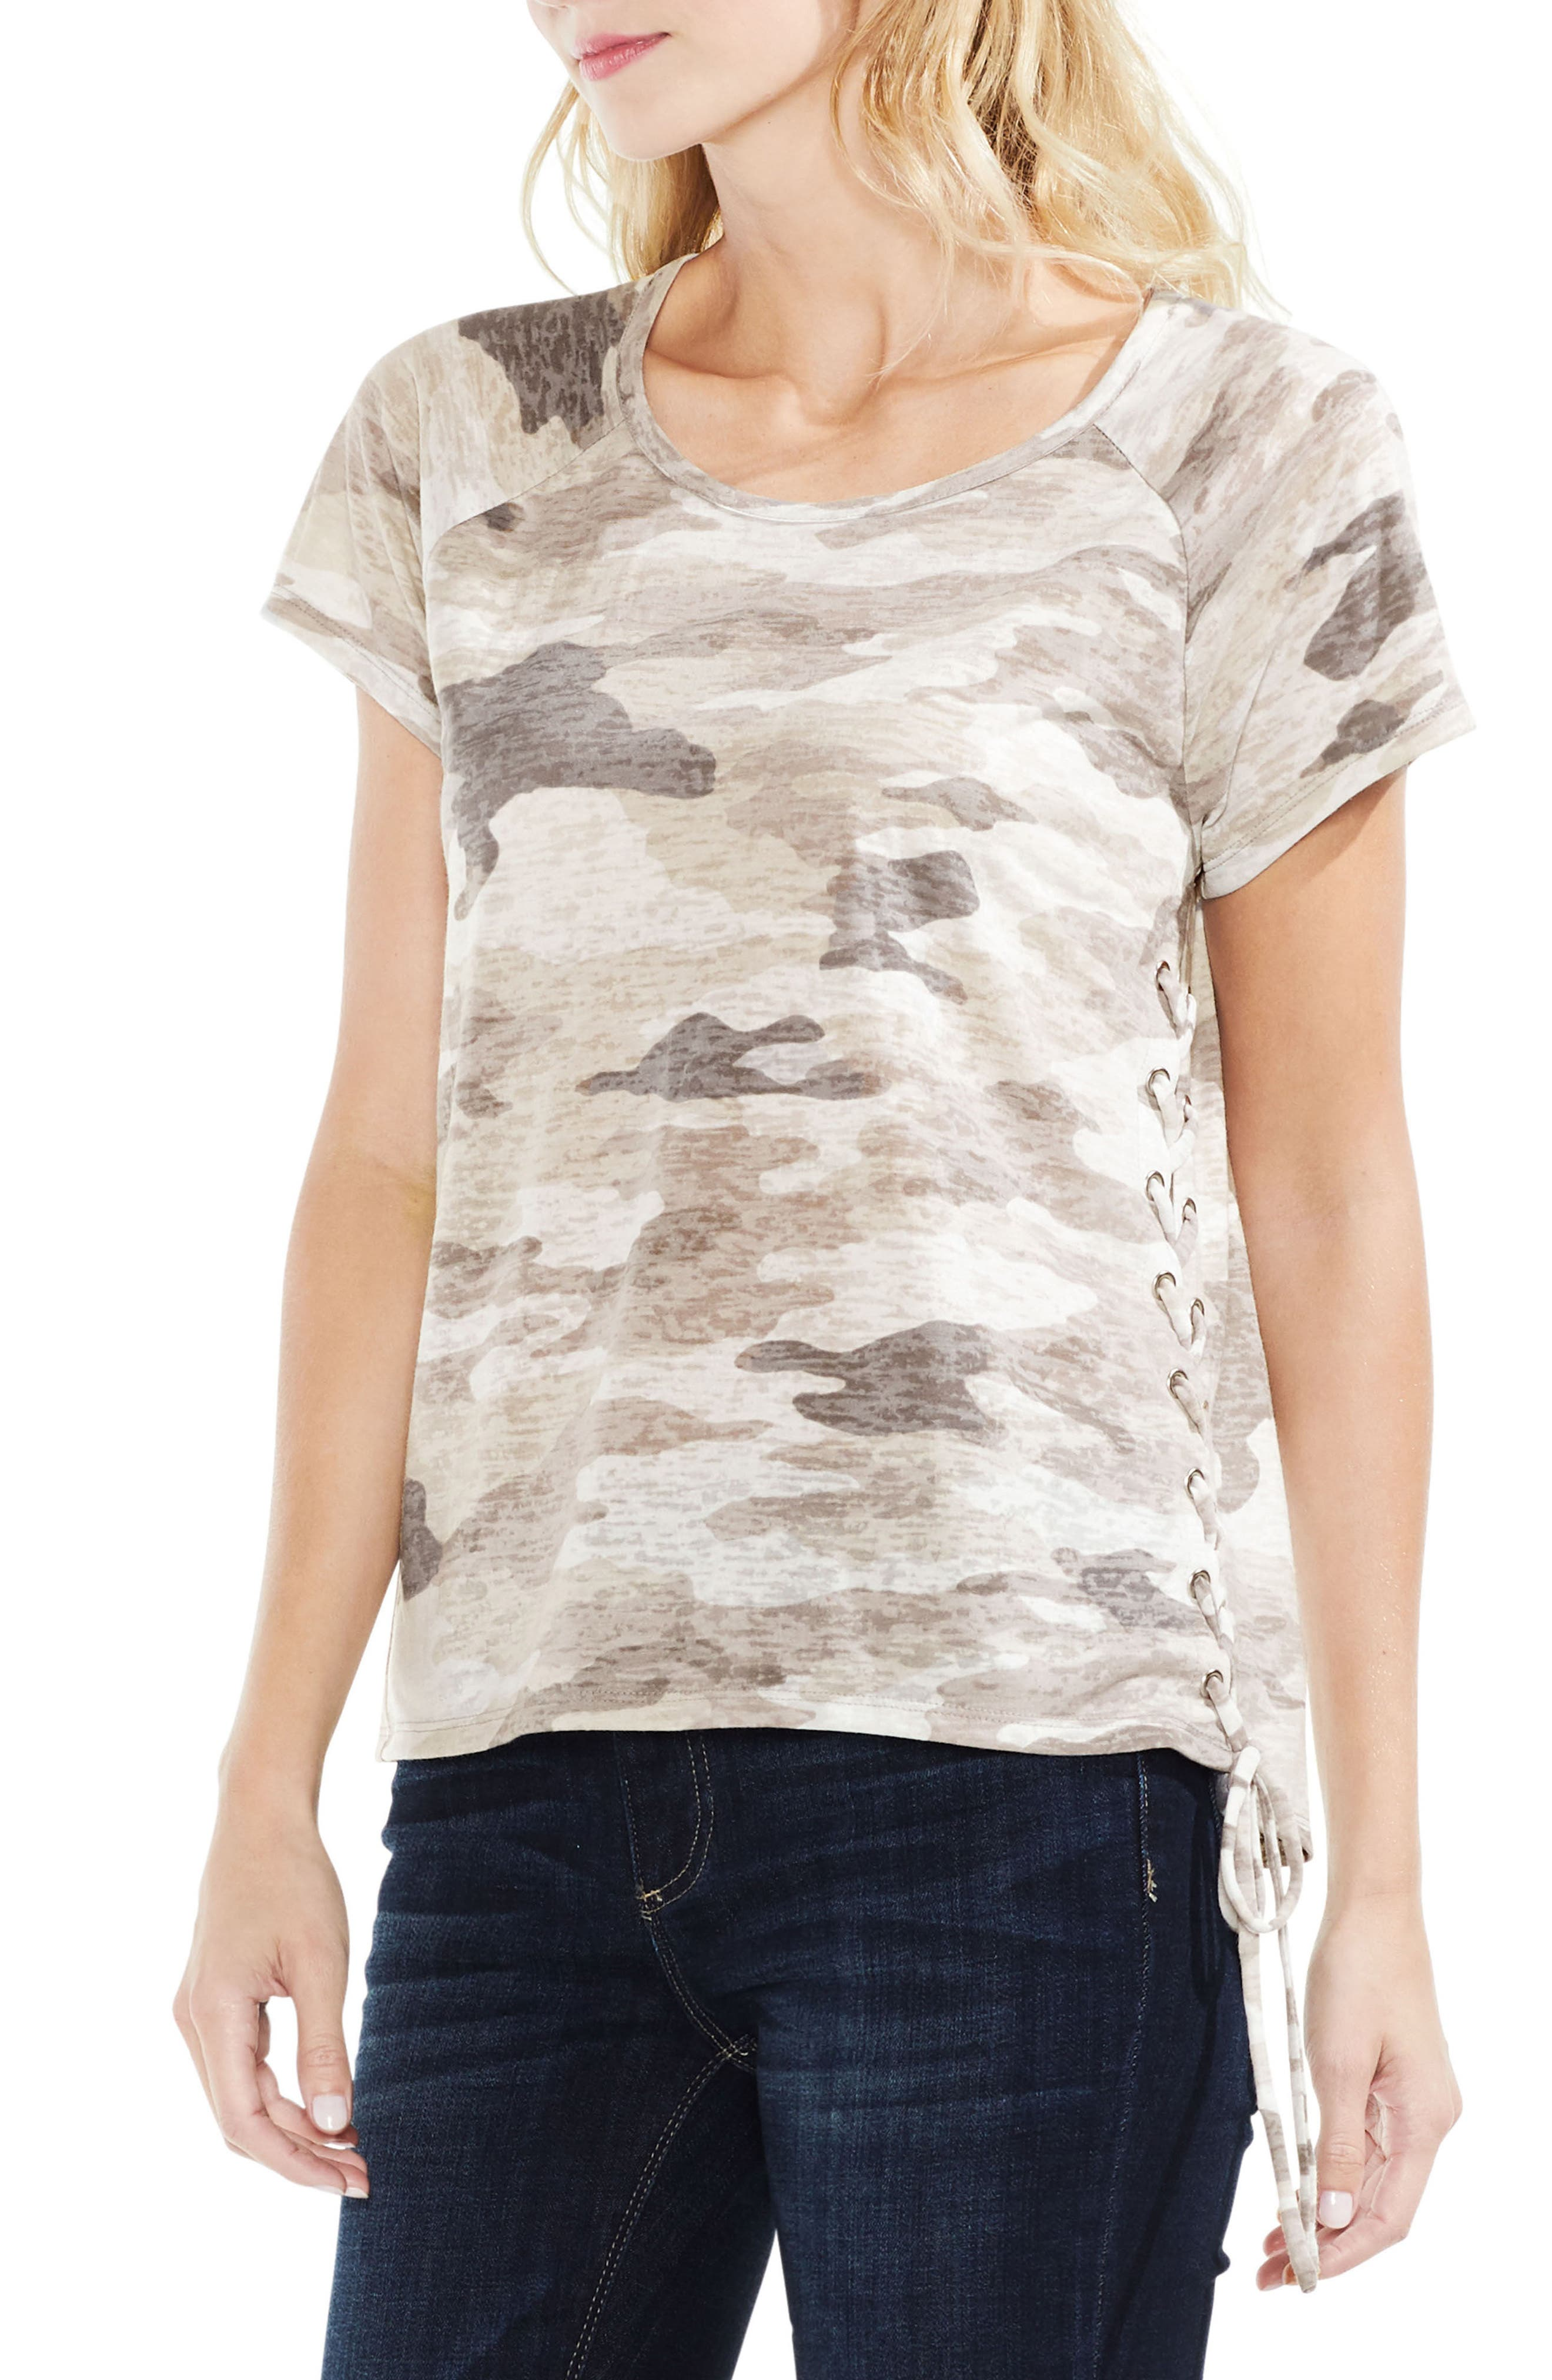 Main Image - Vince Camuto Avenue Camo Lace-Up Top